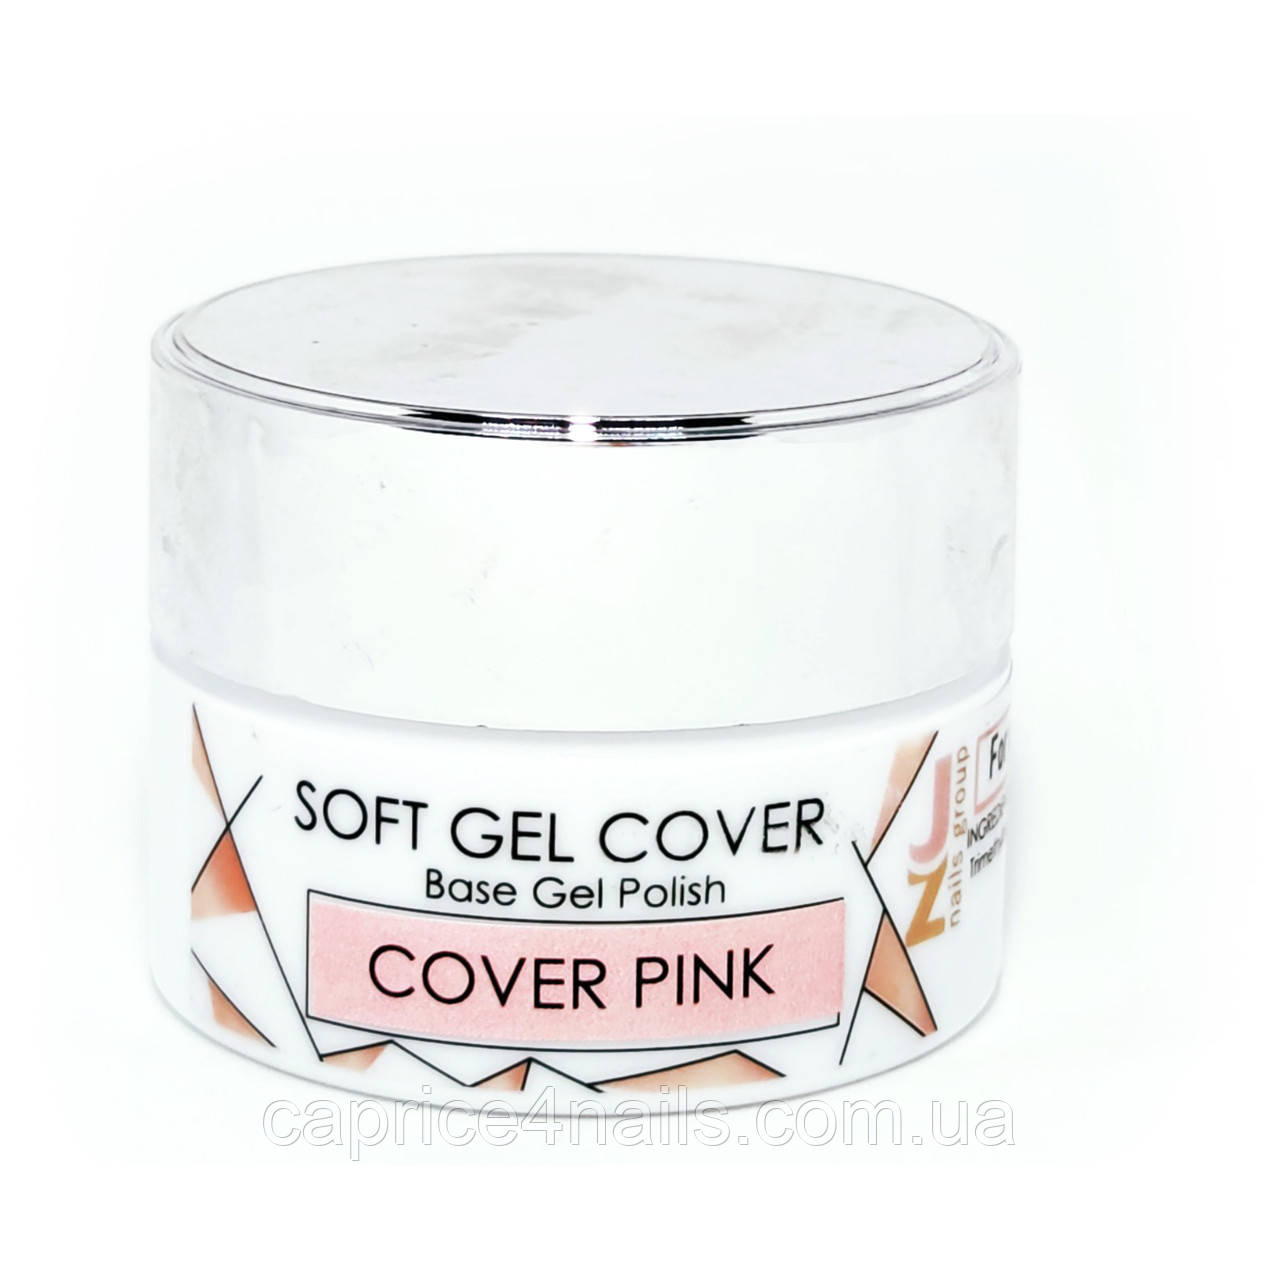 Base SOFT GEL COVER, Pink Cover, JZ, 30 мл